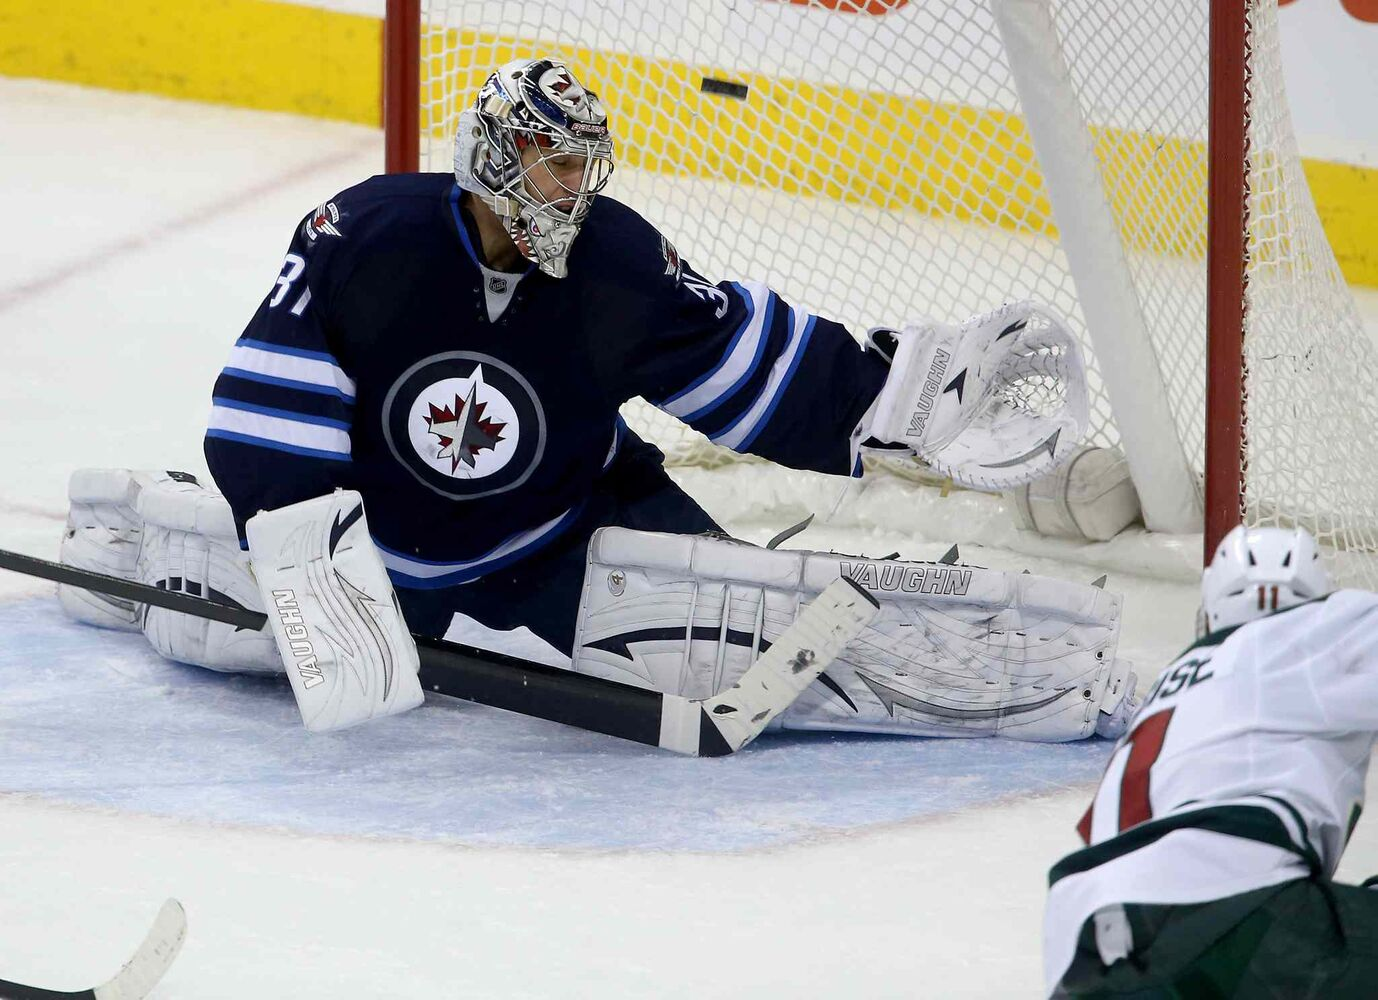 Winnipeg Jets' goaltender Ondrej Pavelec is scored on by Minnesota Wild forward Zach Parise during the third period. (TREVOR HAGAN / WINNIPEG FREE PRESS)